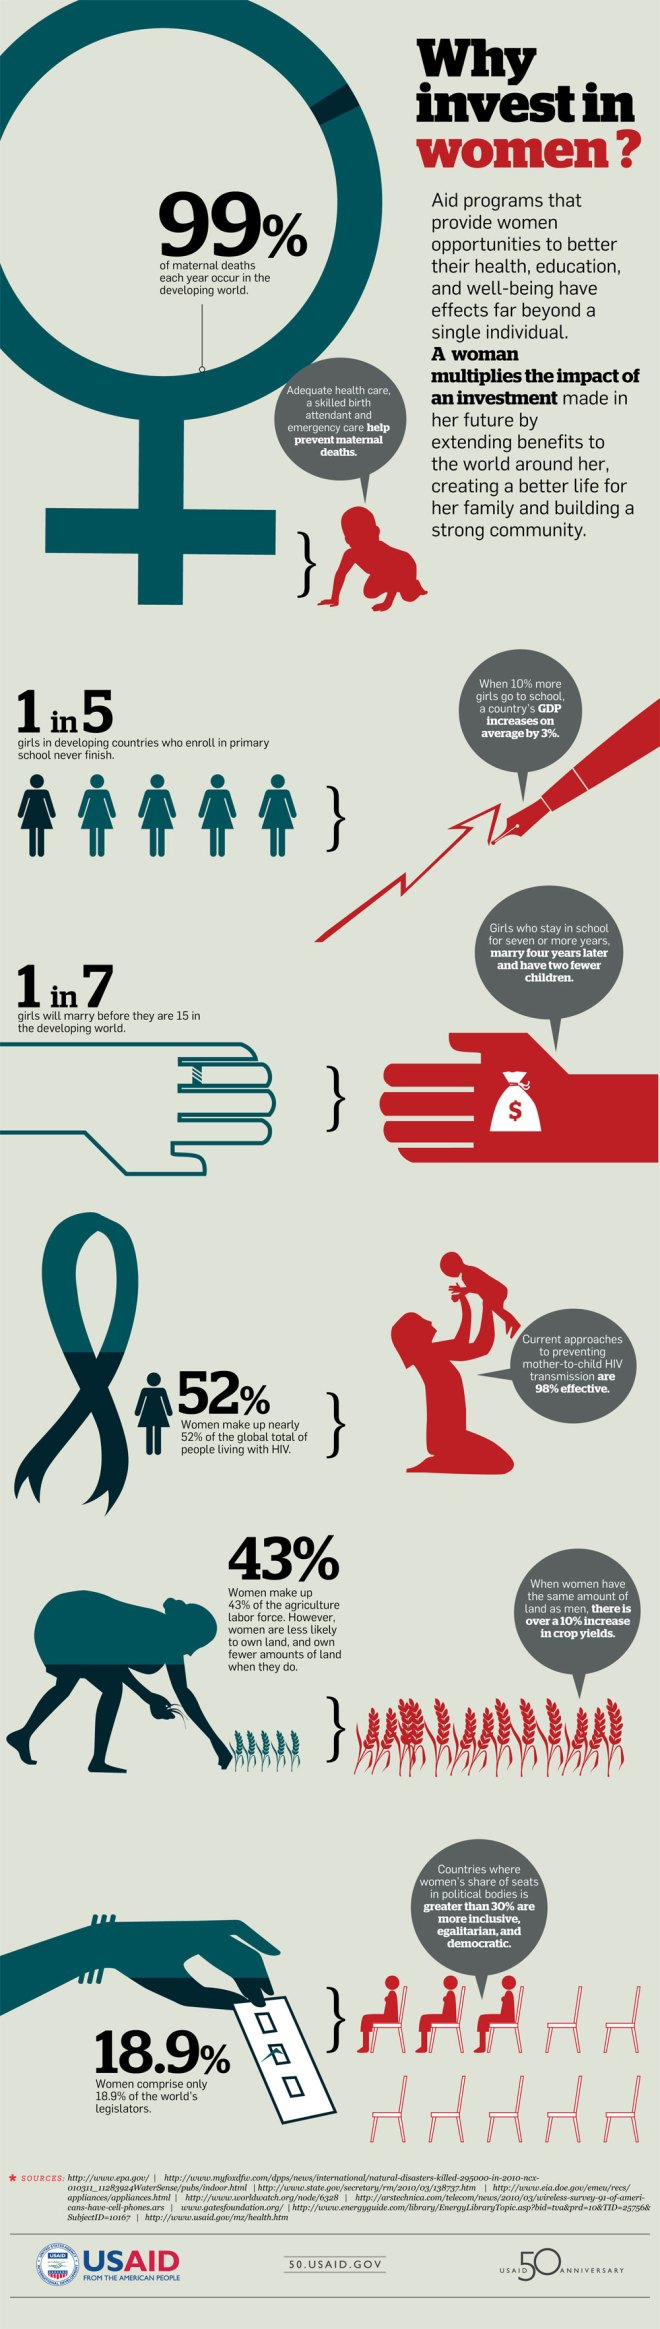 Why Invest in Women Infographic